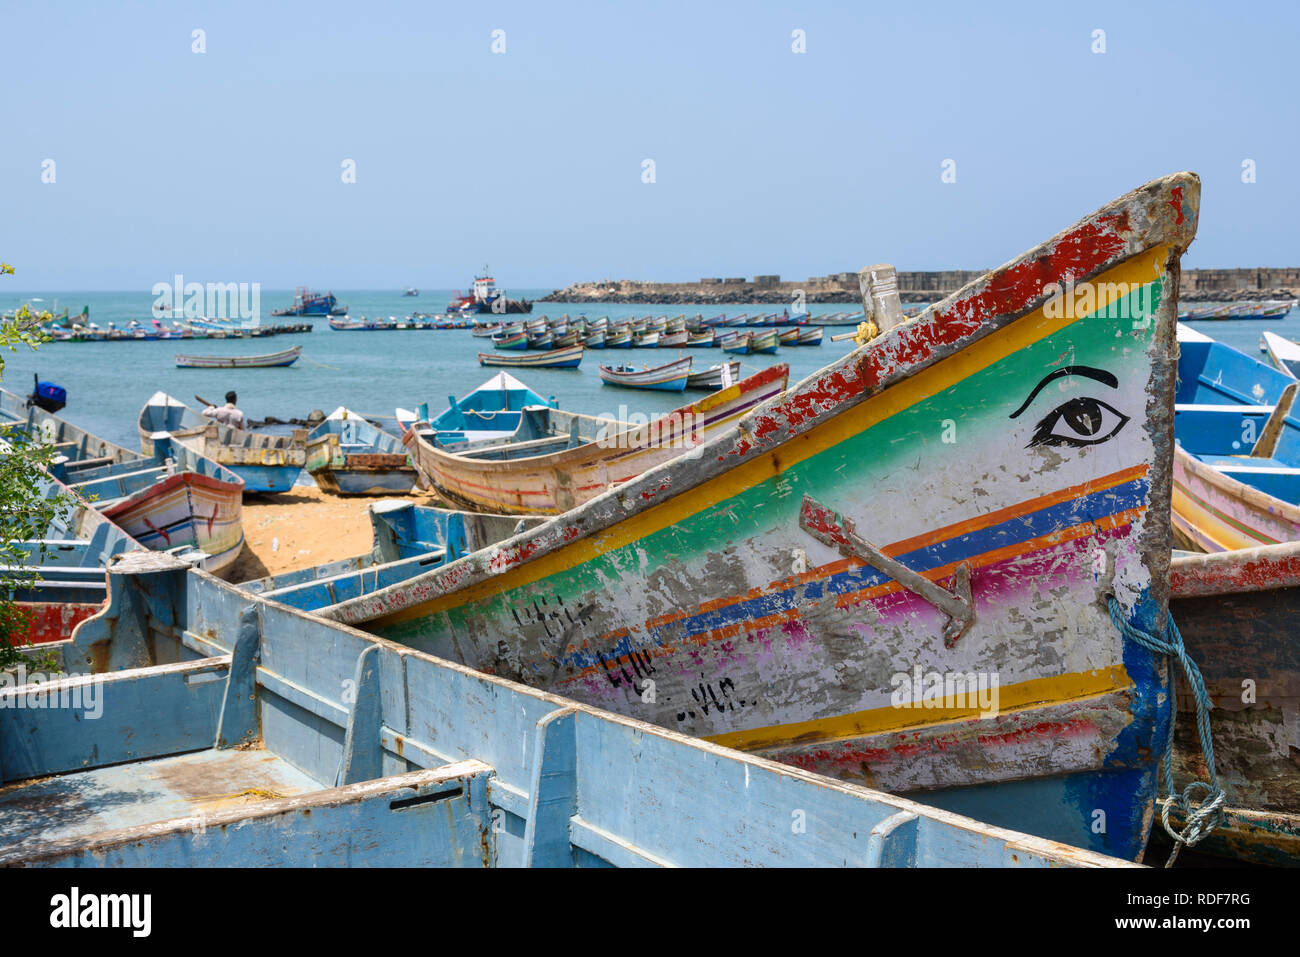 Fishing boats at Vizhinjam, near Kovalam, Kerala, India - Stock Image